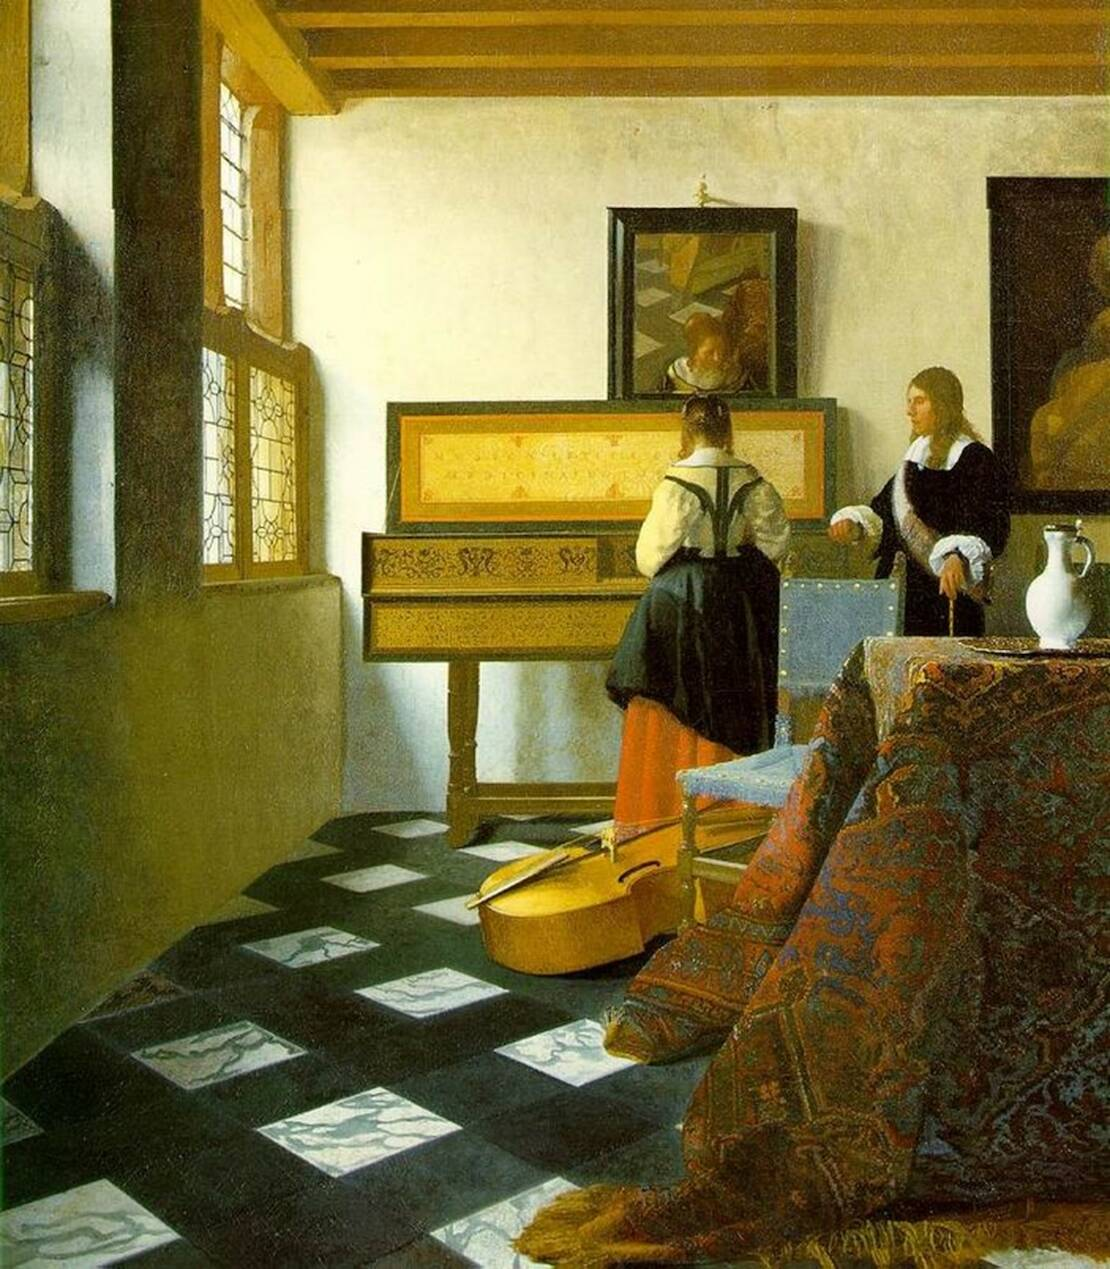 Vermeer, The Music Lesson, 1664